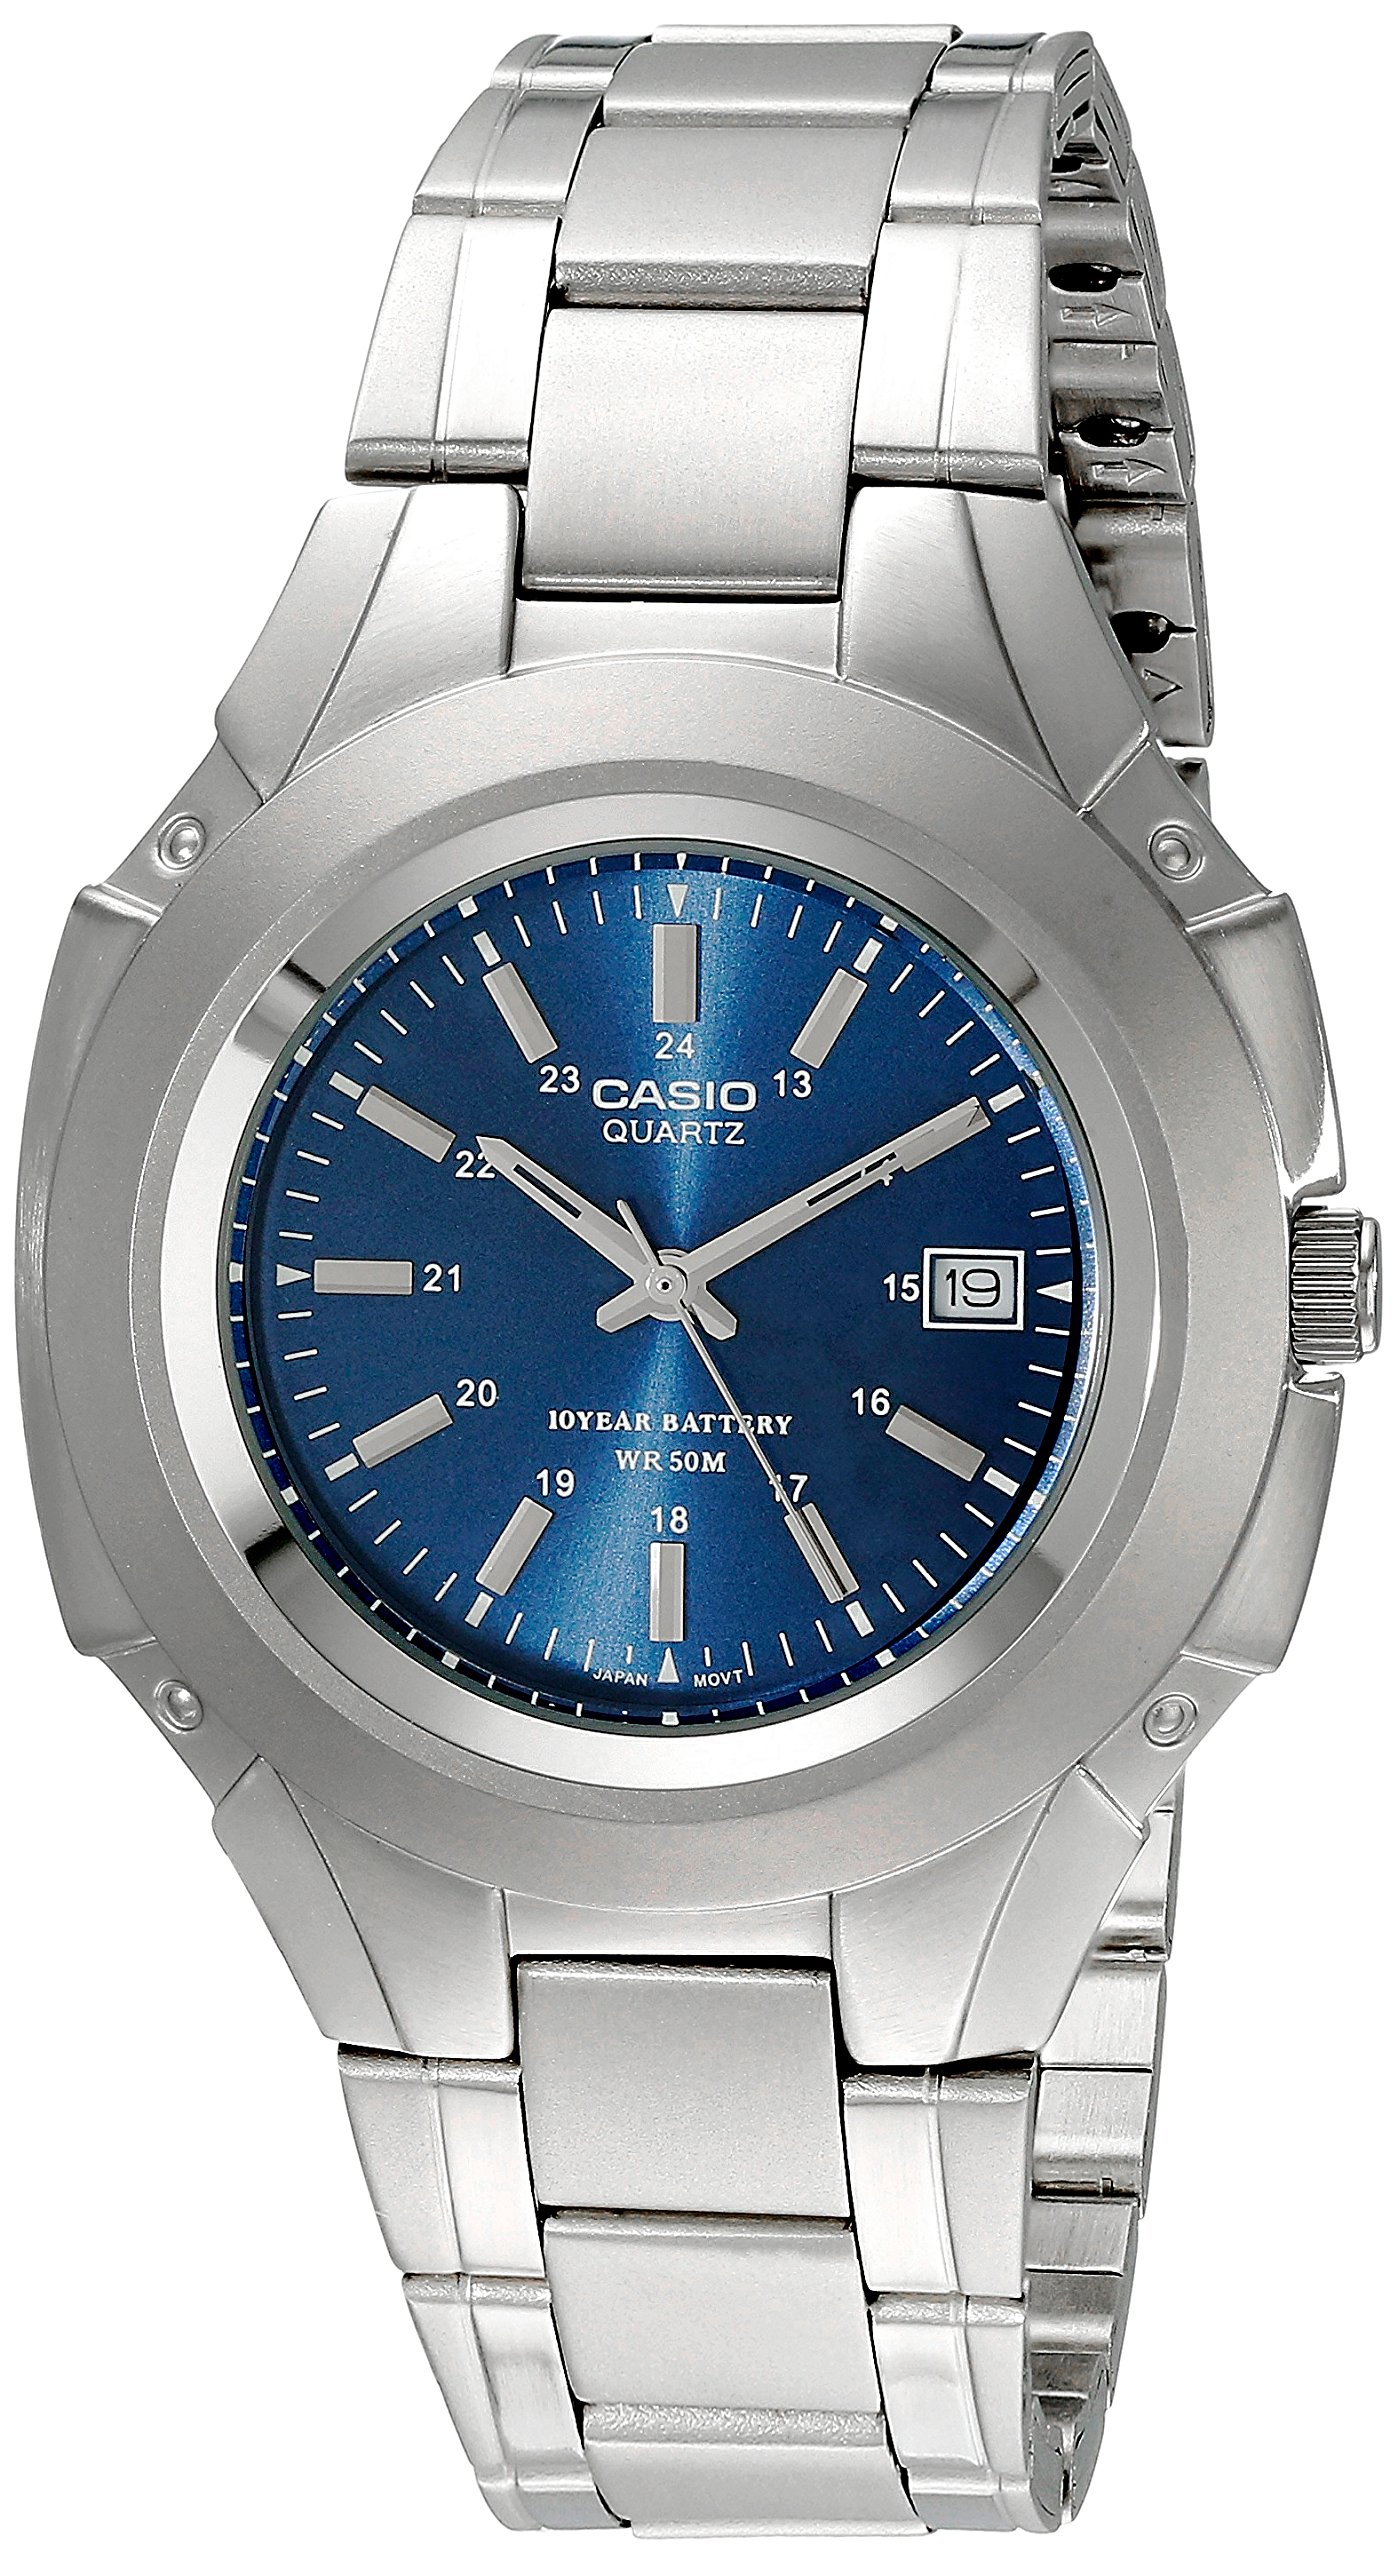 Casio Men's Mtp3050D-2Av Classic 10-Year Battery Stainless Steel Dress Watch 6